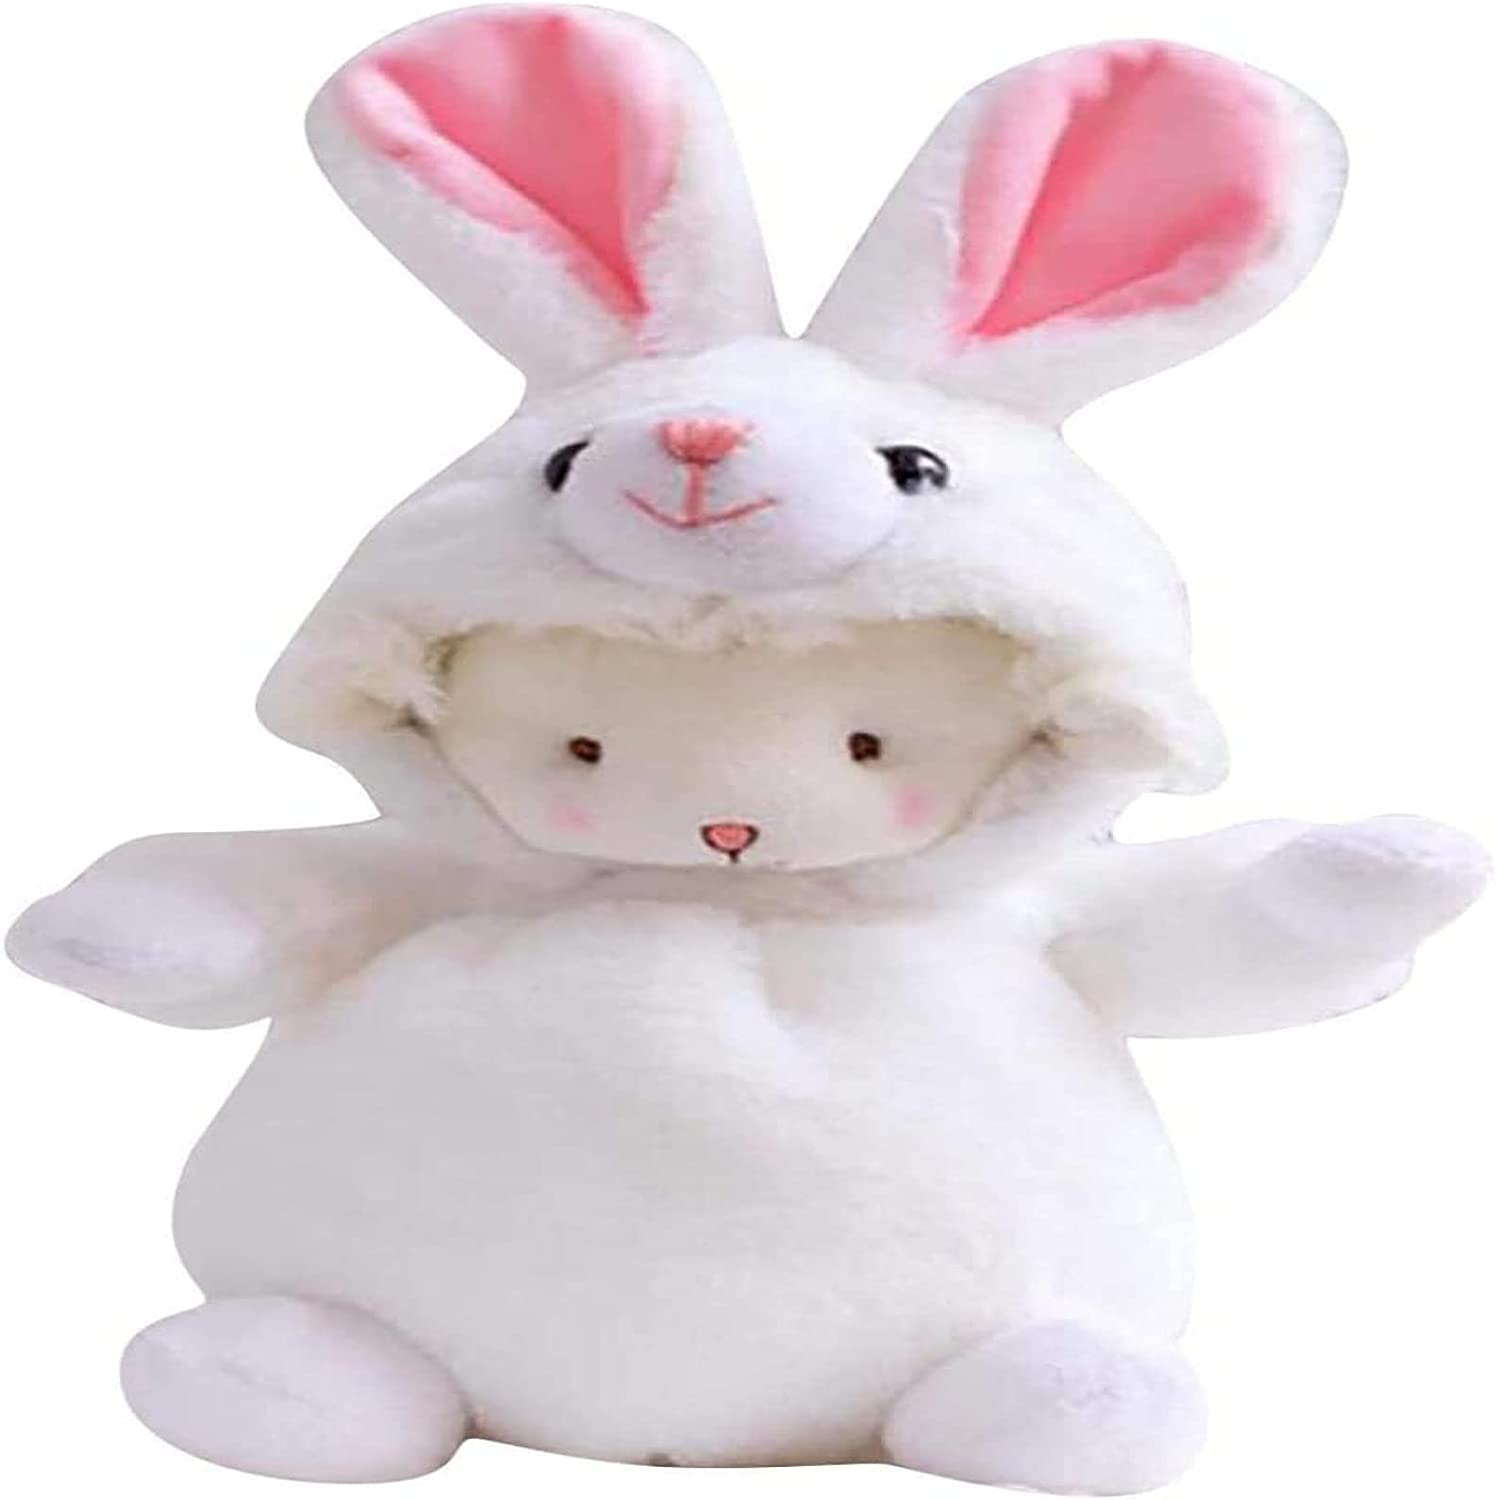 Plush Toys White Rabbit Doll Shape Washington Mall be Back Limited time for free shipping Pillows can Used